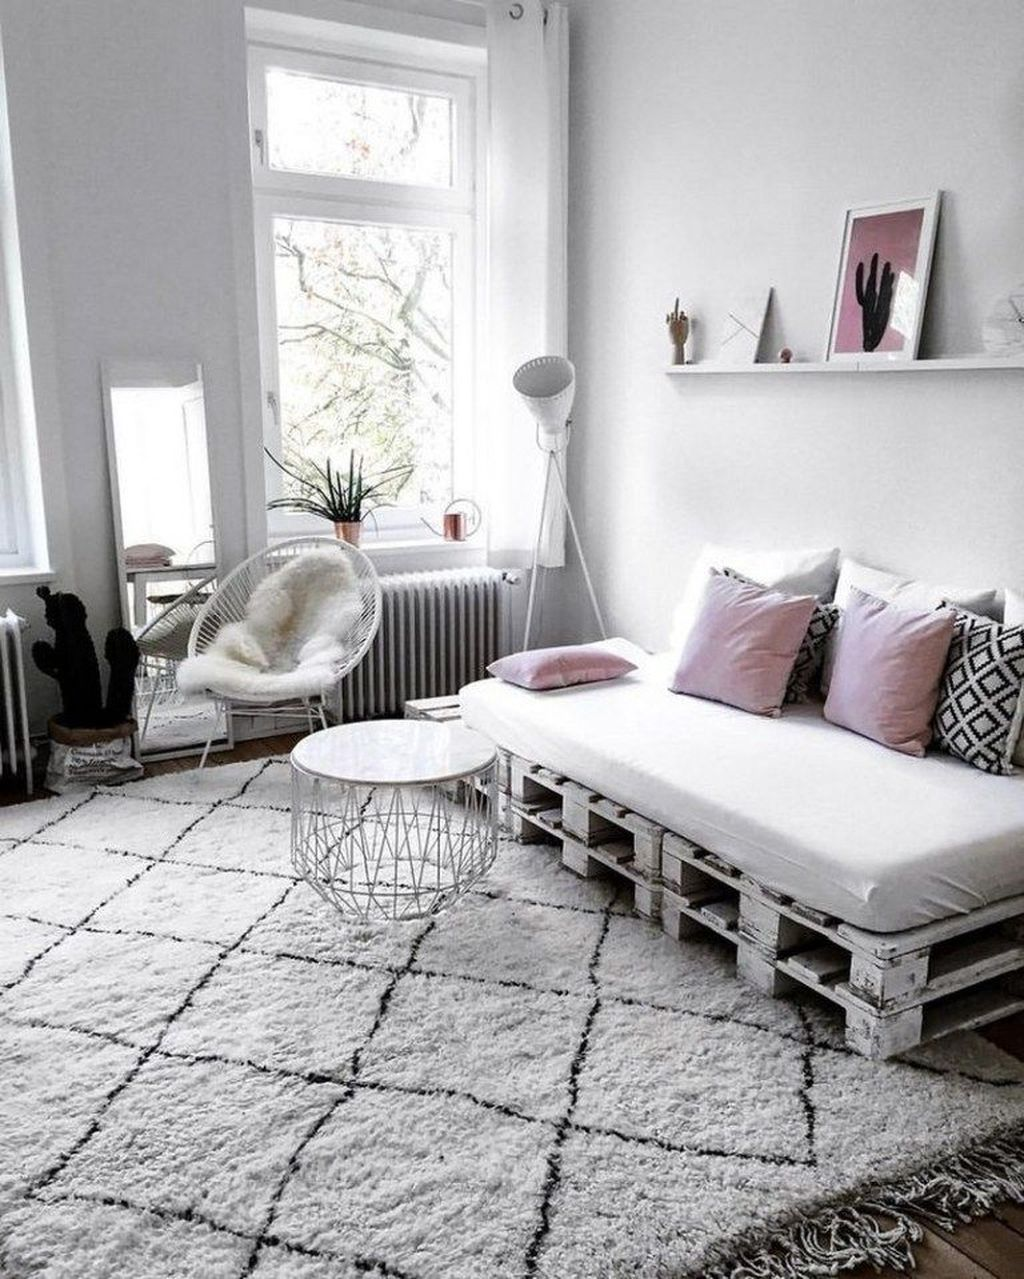 48 Amazing Teens Bedrooms Design Ideas For Small Spaces To Try